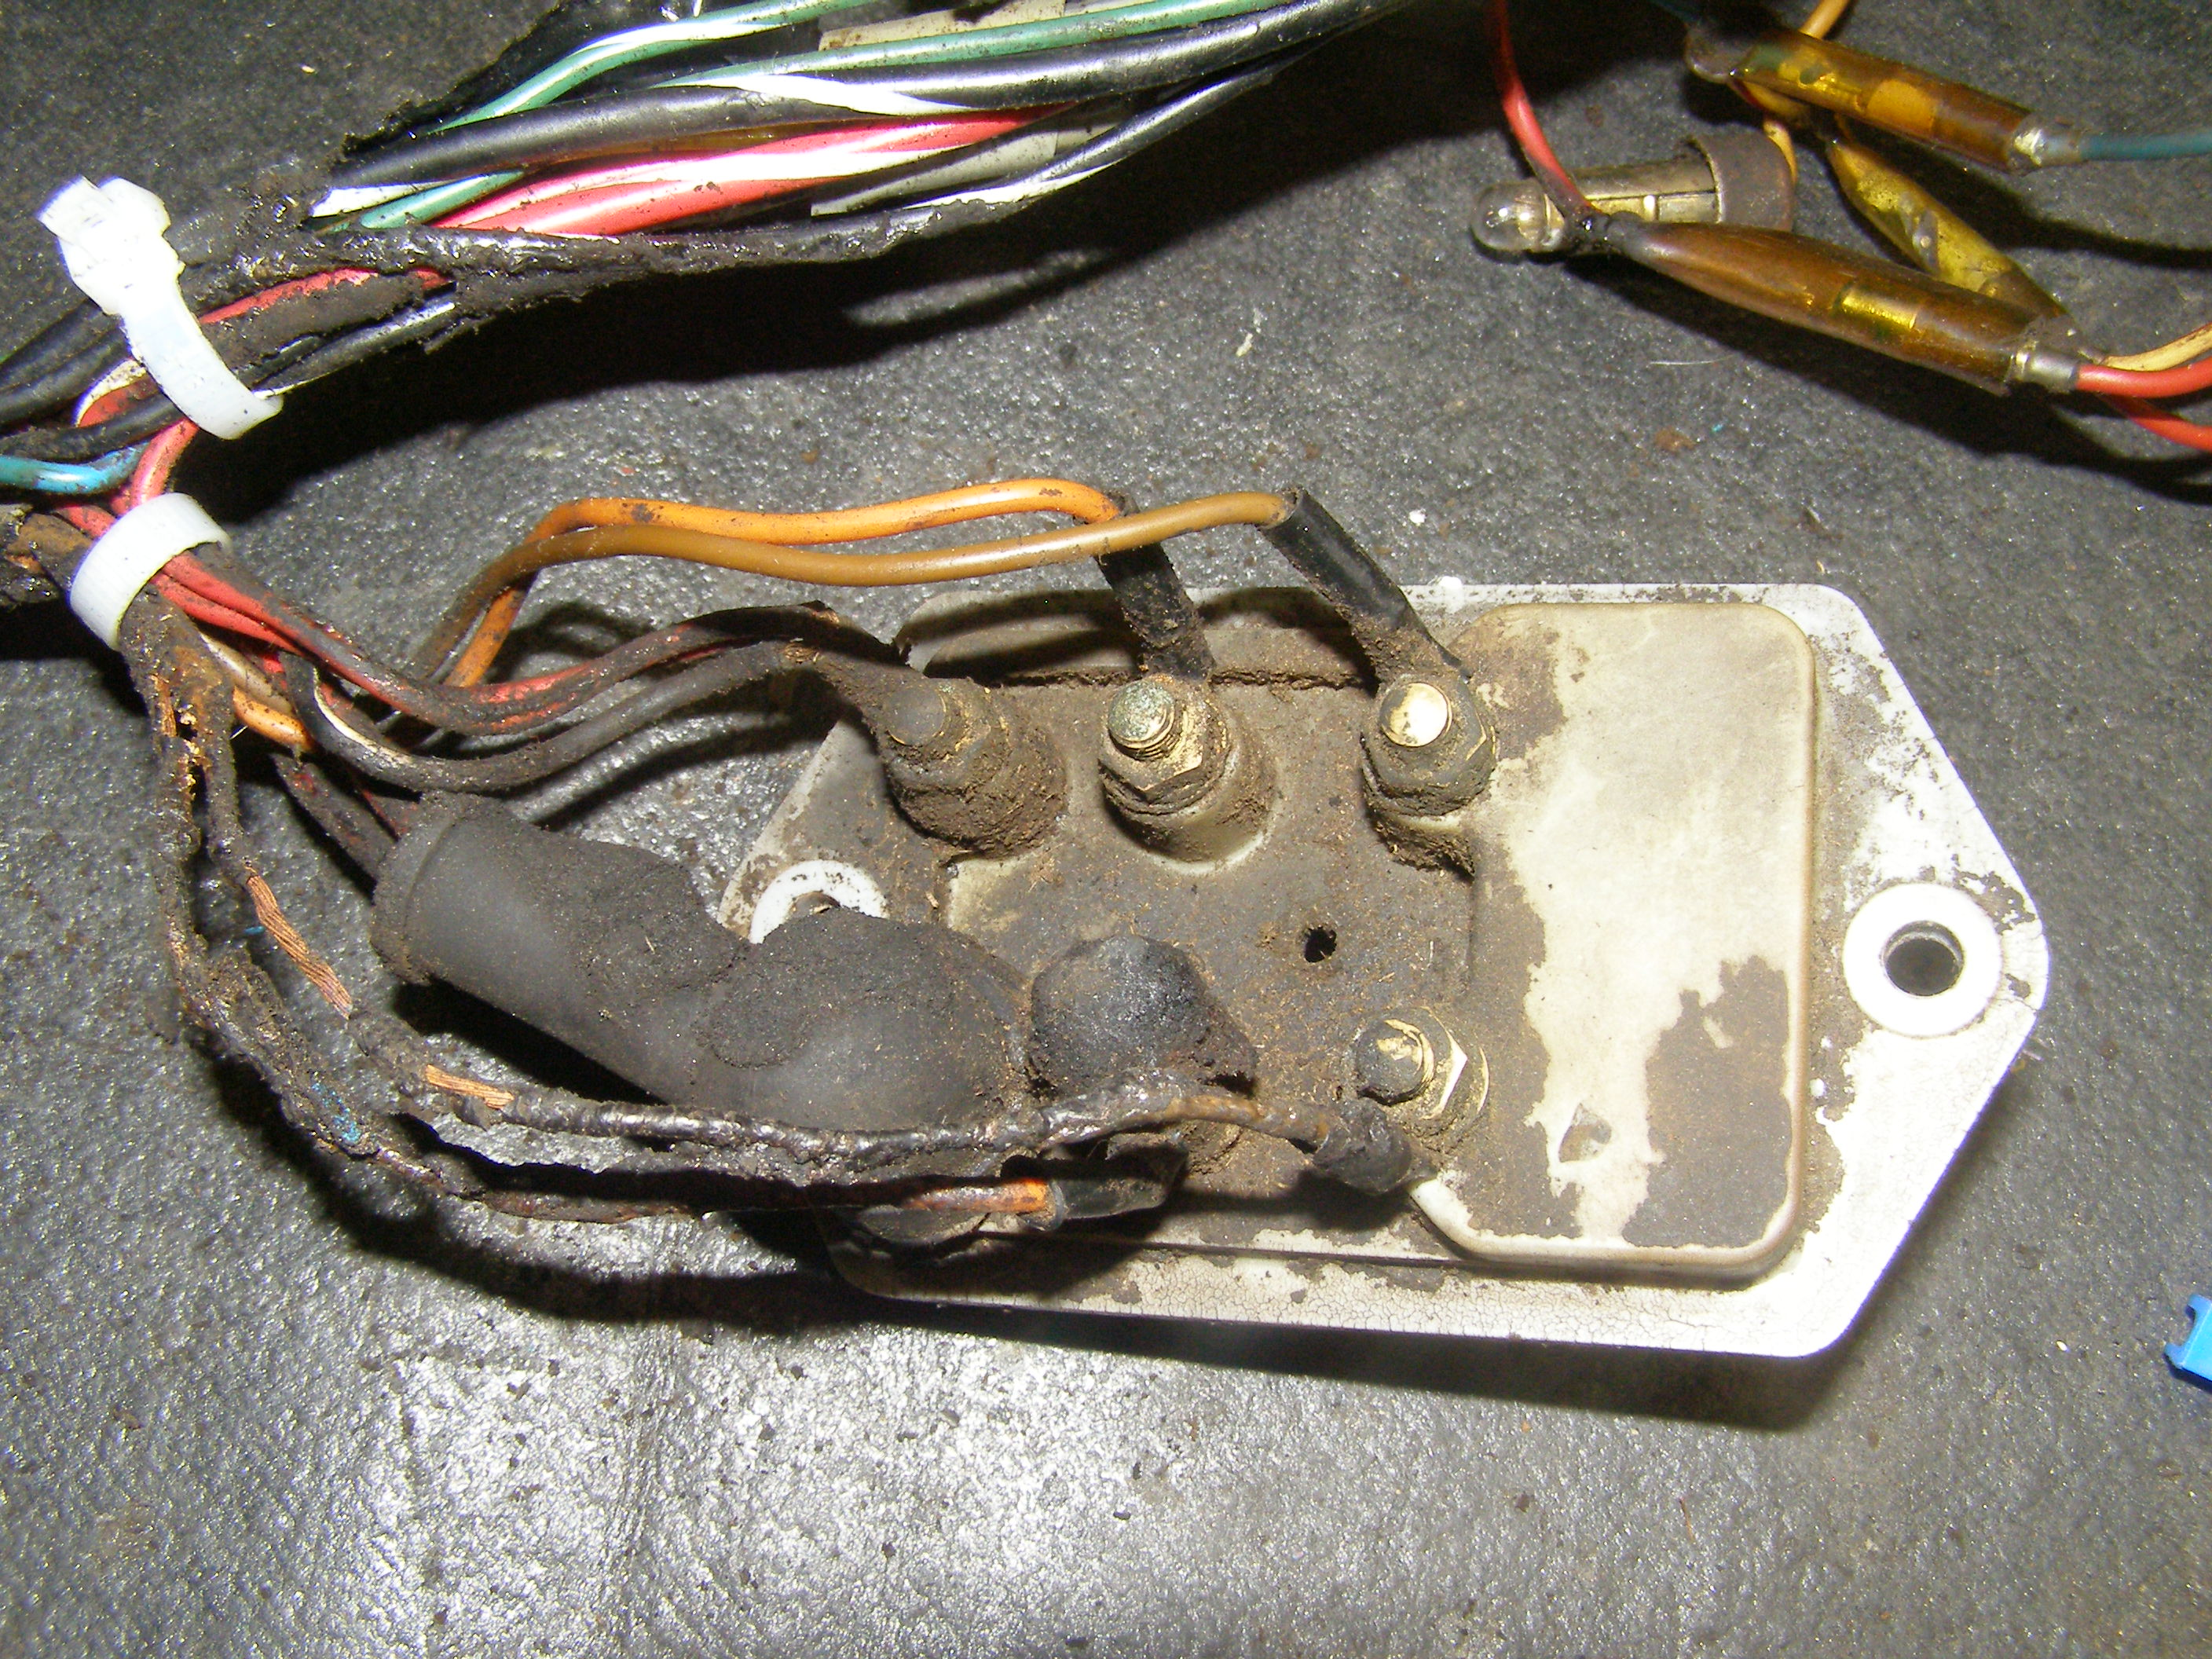 Wiring Harness Restoration Repair Rebuilding Customizing Car Manufacturer India Vintage Tractor Burnt Wires